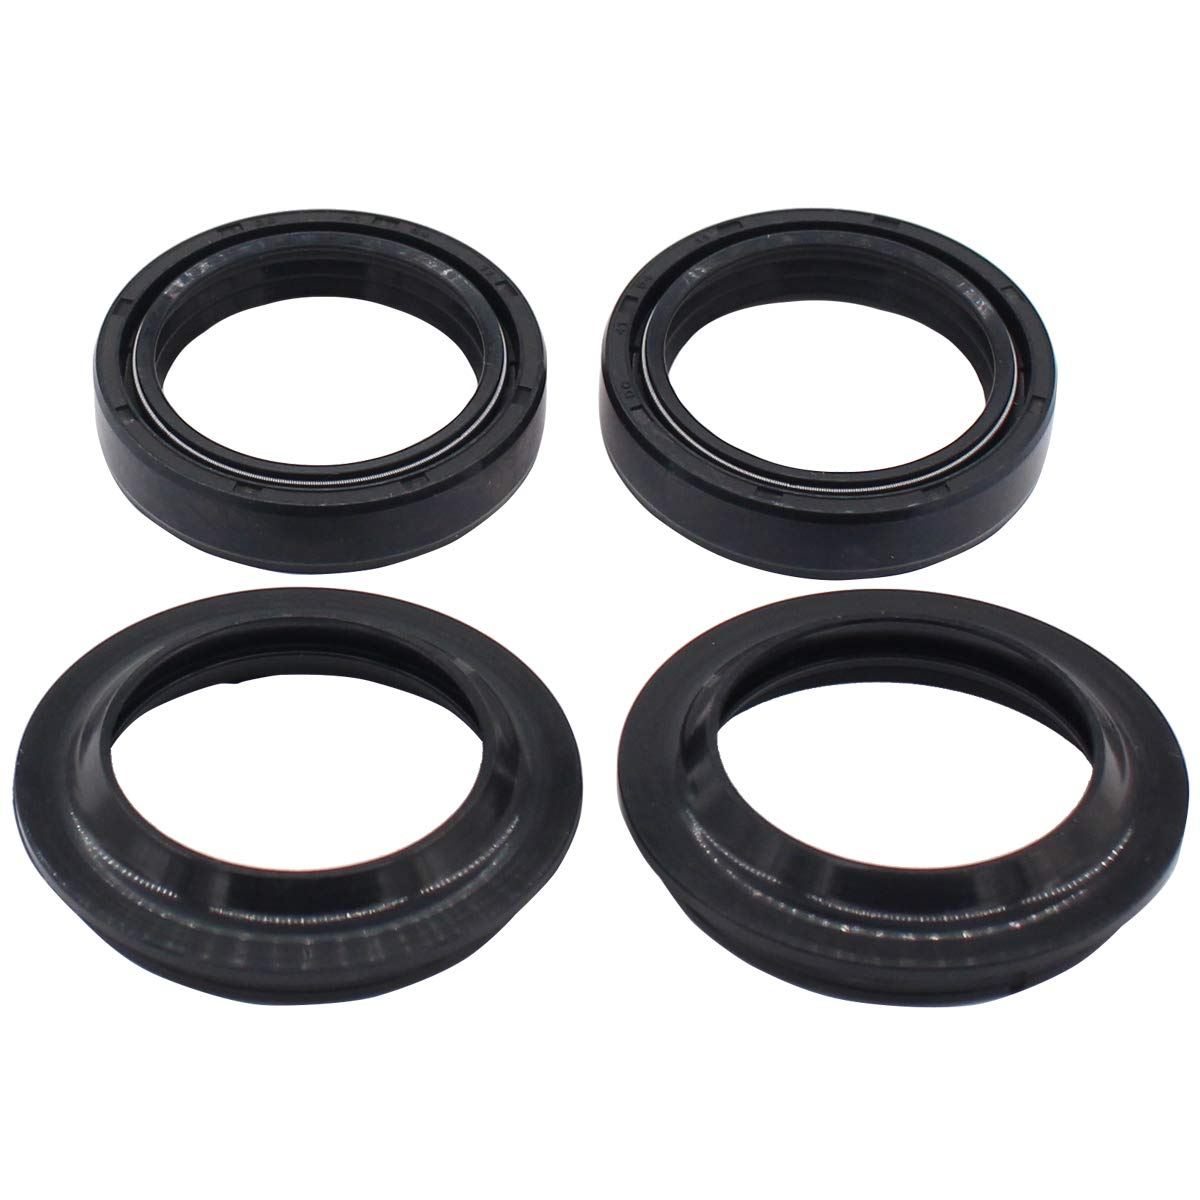 MOTOKU Set of Fork Oil Seal /& Dust Seal Wiper Kit for BMW F650GS Harley-Davidson Electra Glide Electra Heritage Softail Tour Honda CB500X